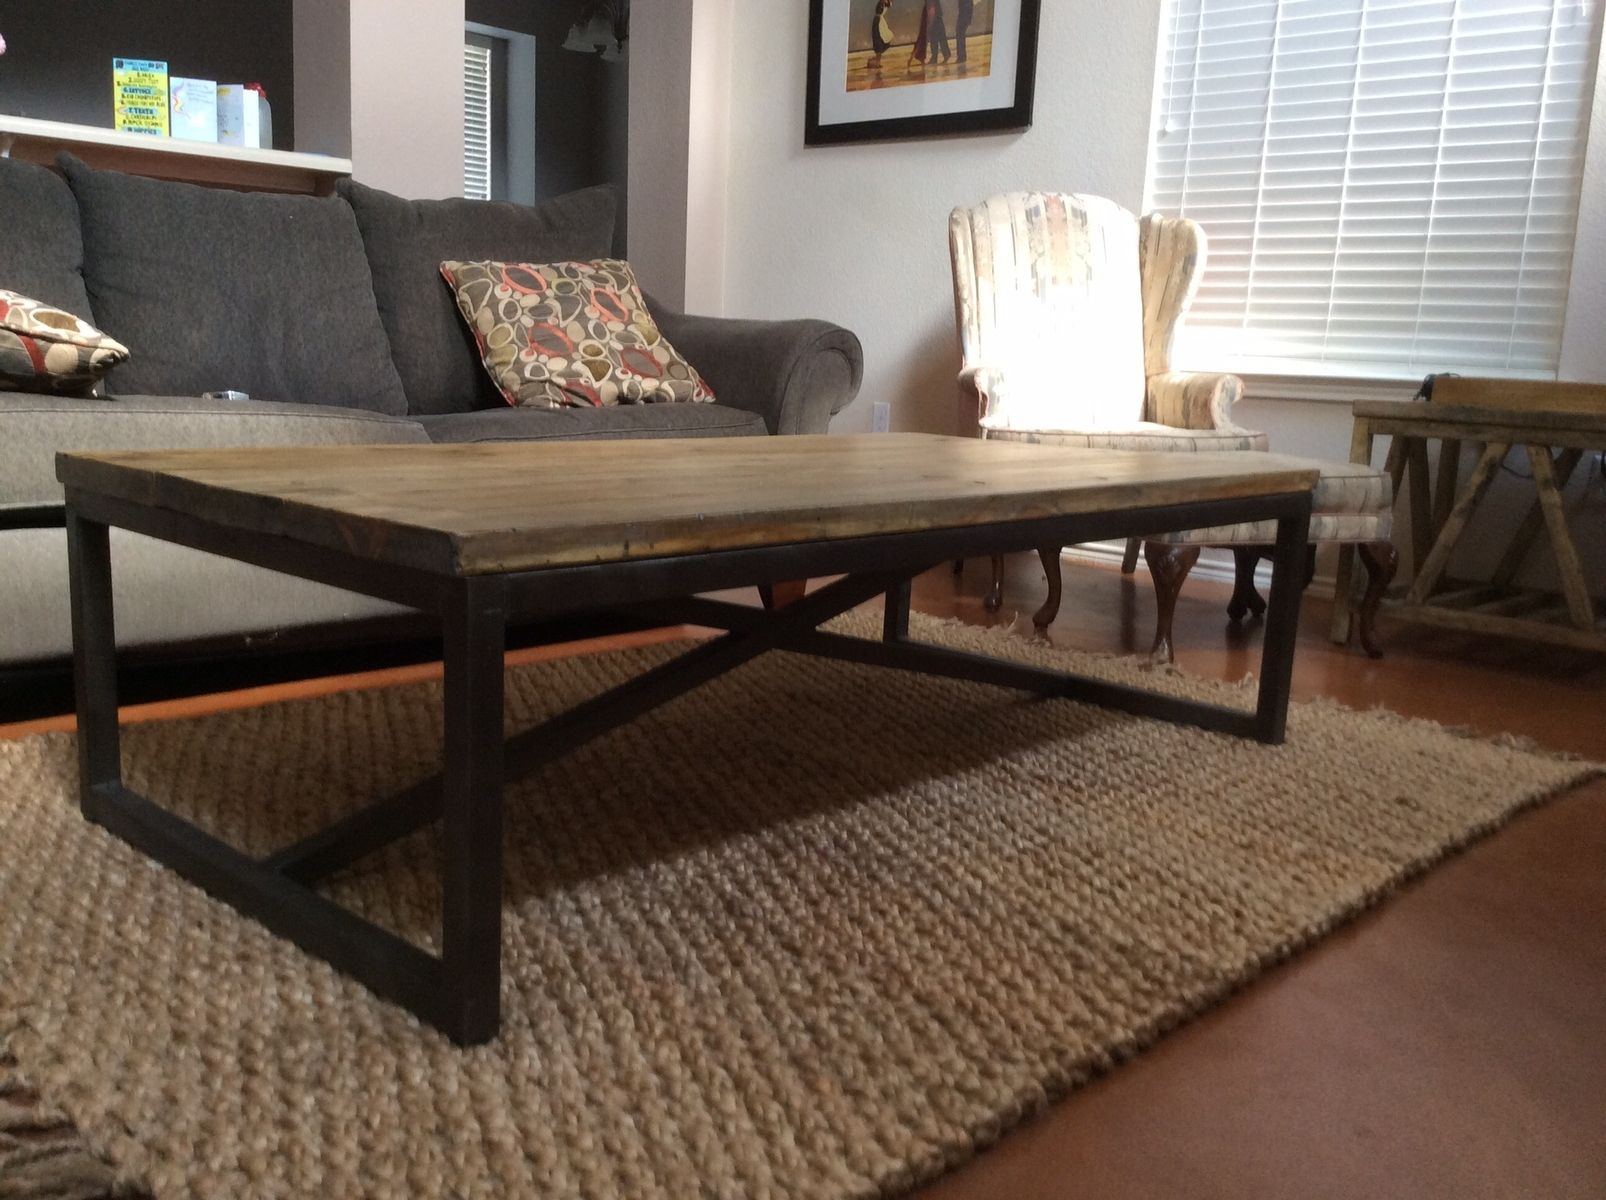 Handmade Rustic X Brace Coffee Table With Recycled Metal Frame by ...